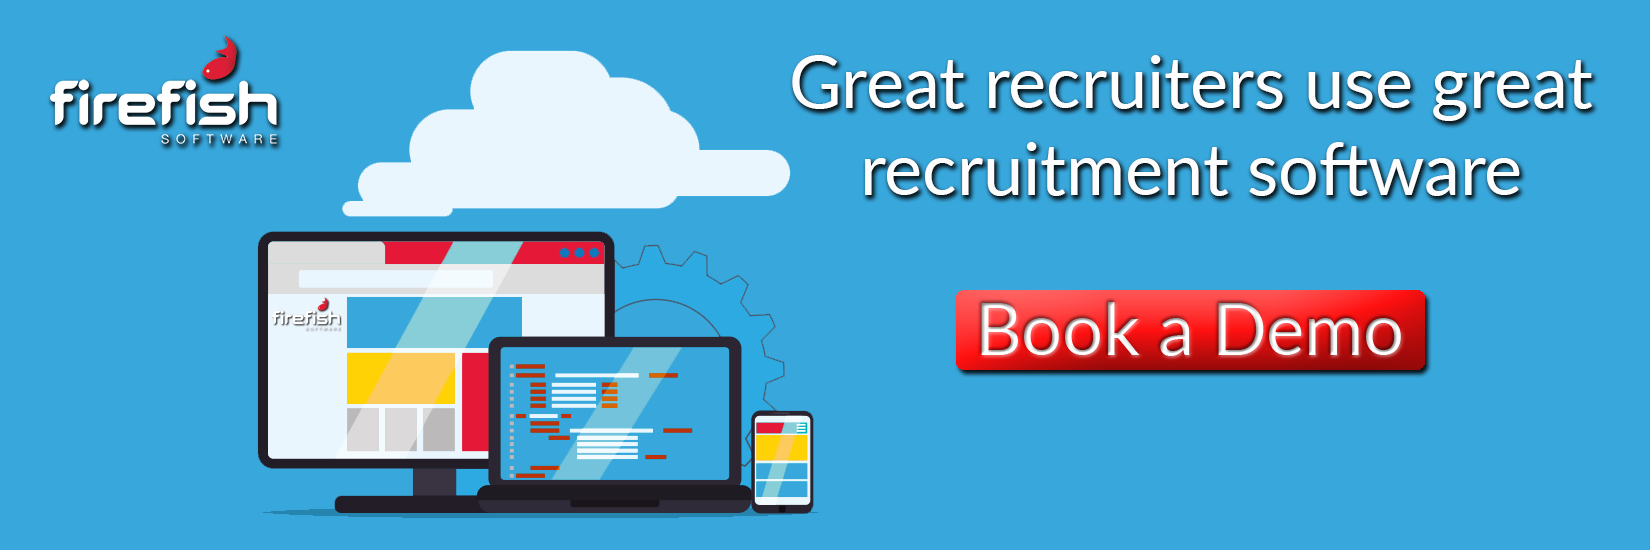 Book a demo of Firefish Recruitment Software